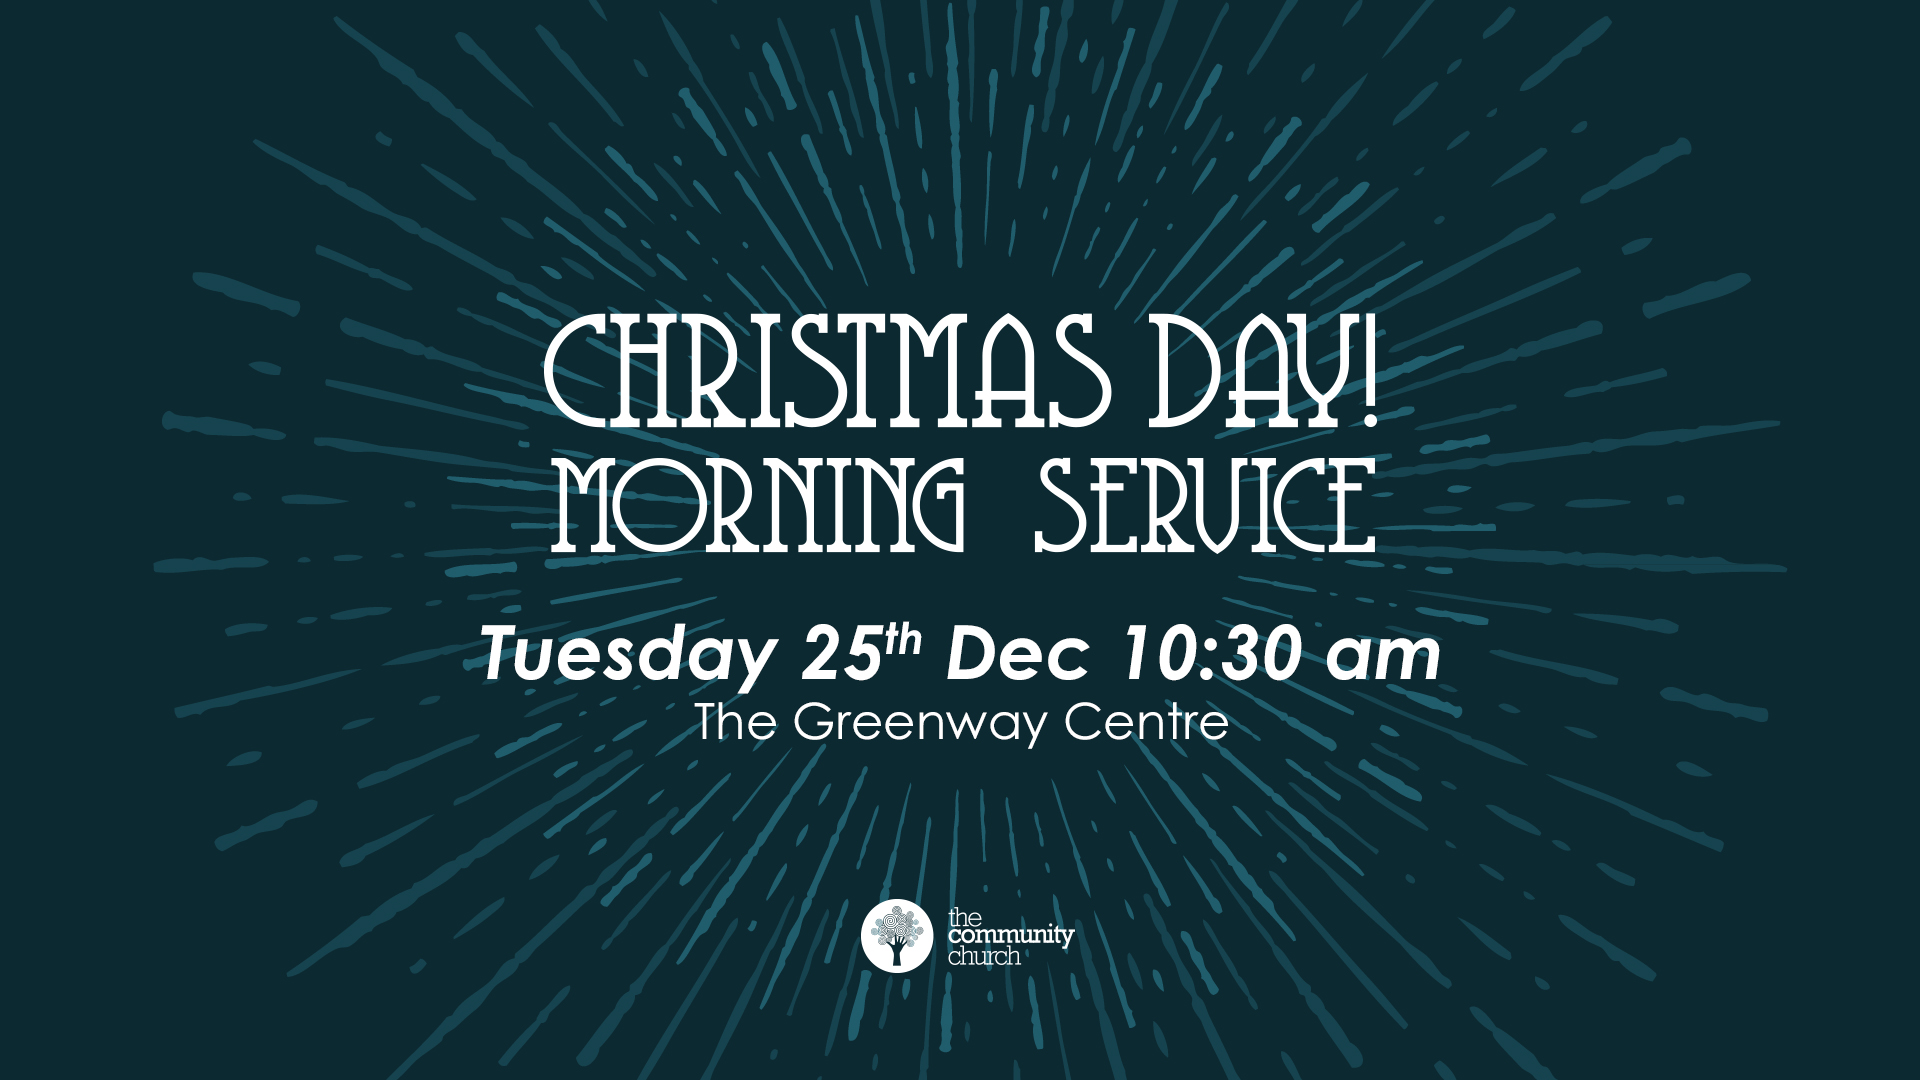 Join us for an hour to celebrate Christmas morning together, mince pies included.